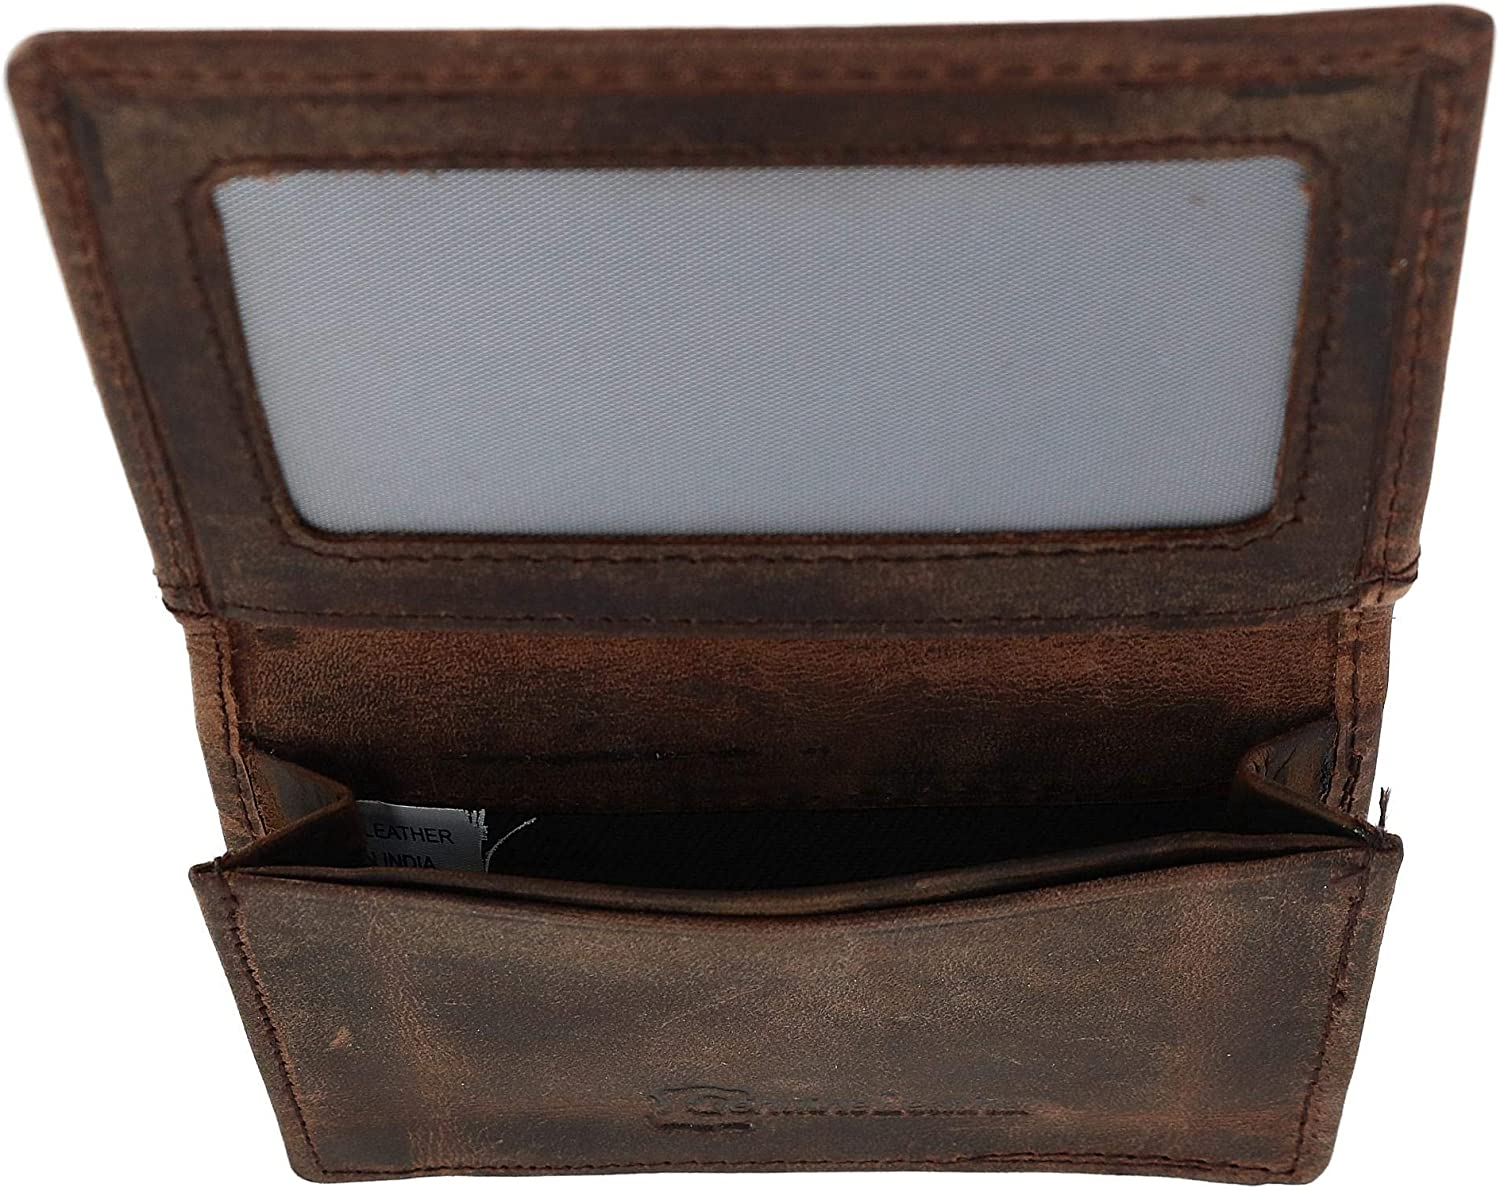 CTM Vintage Leather RFID Business Card and ID Holder